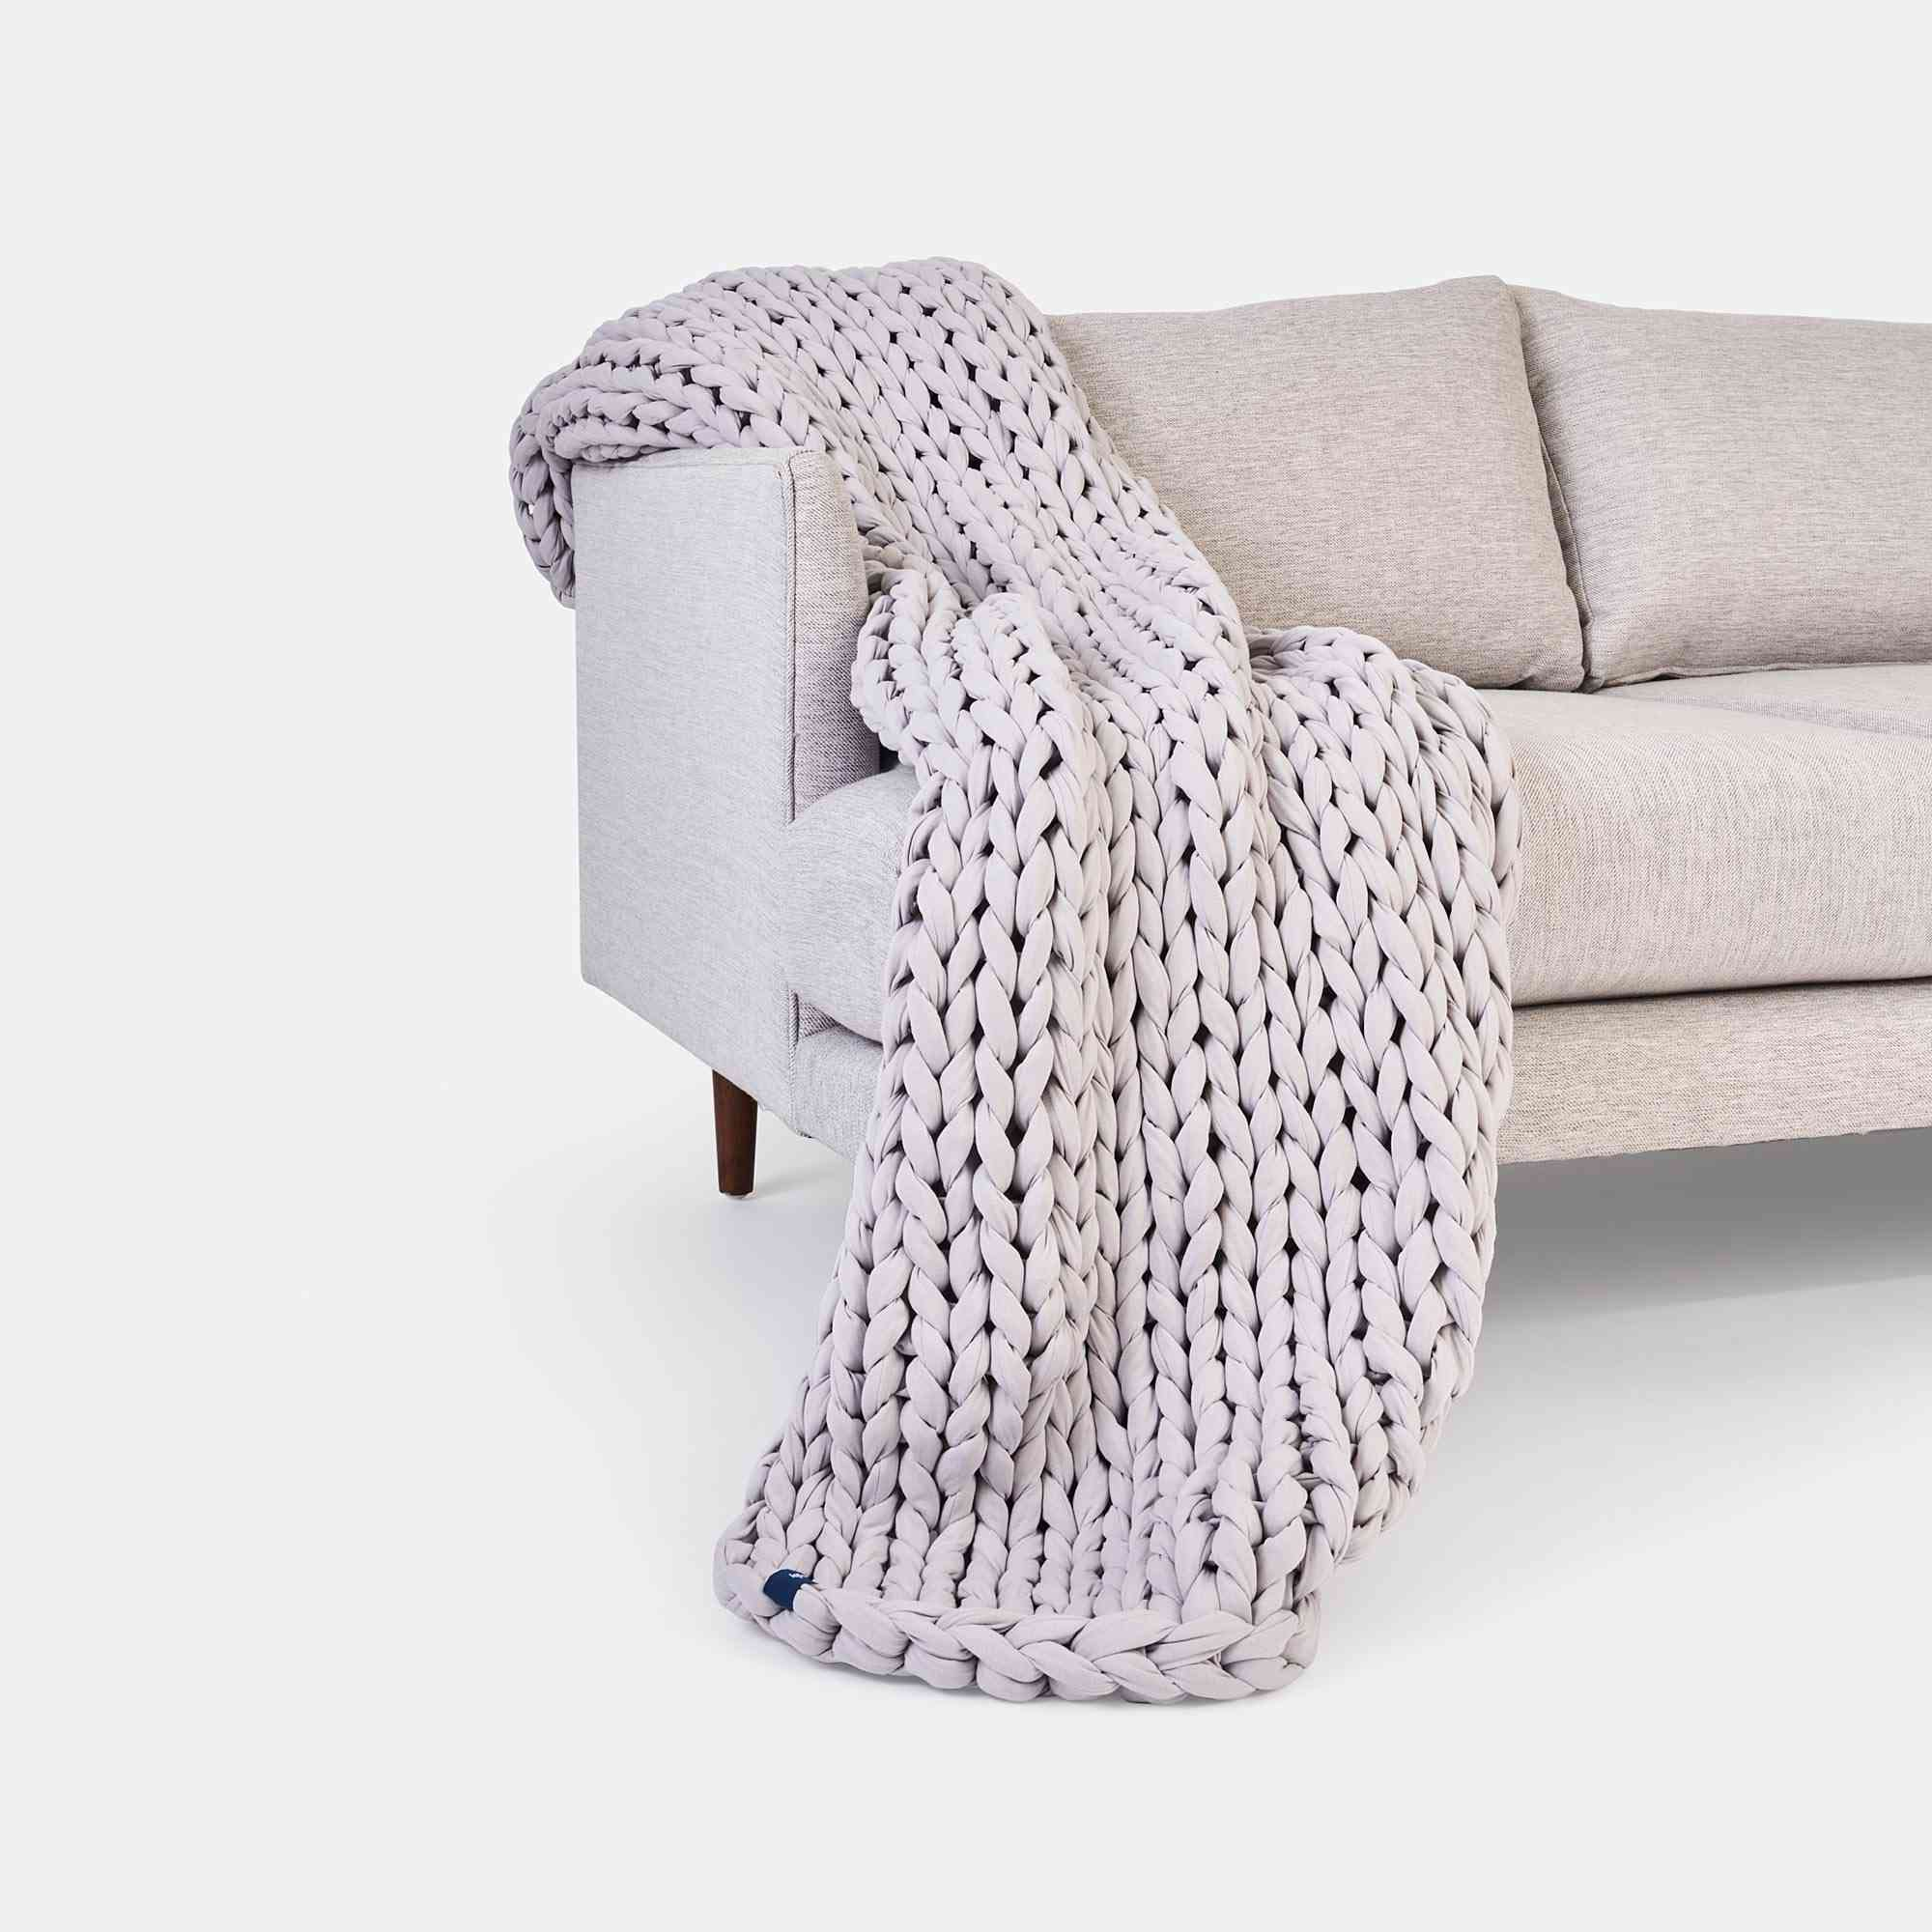 A chunky gray weighted woven cotton throw blanket.